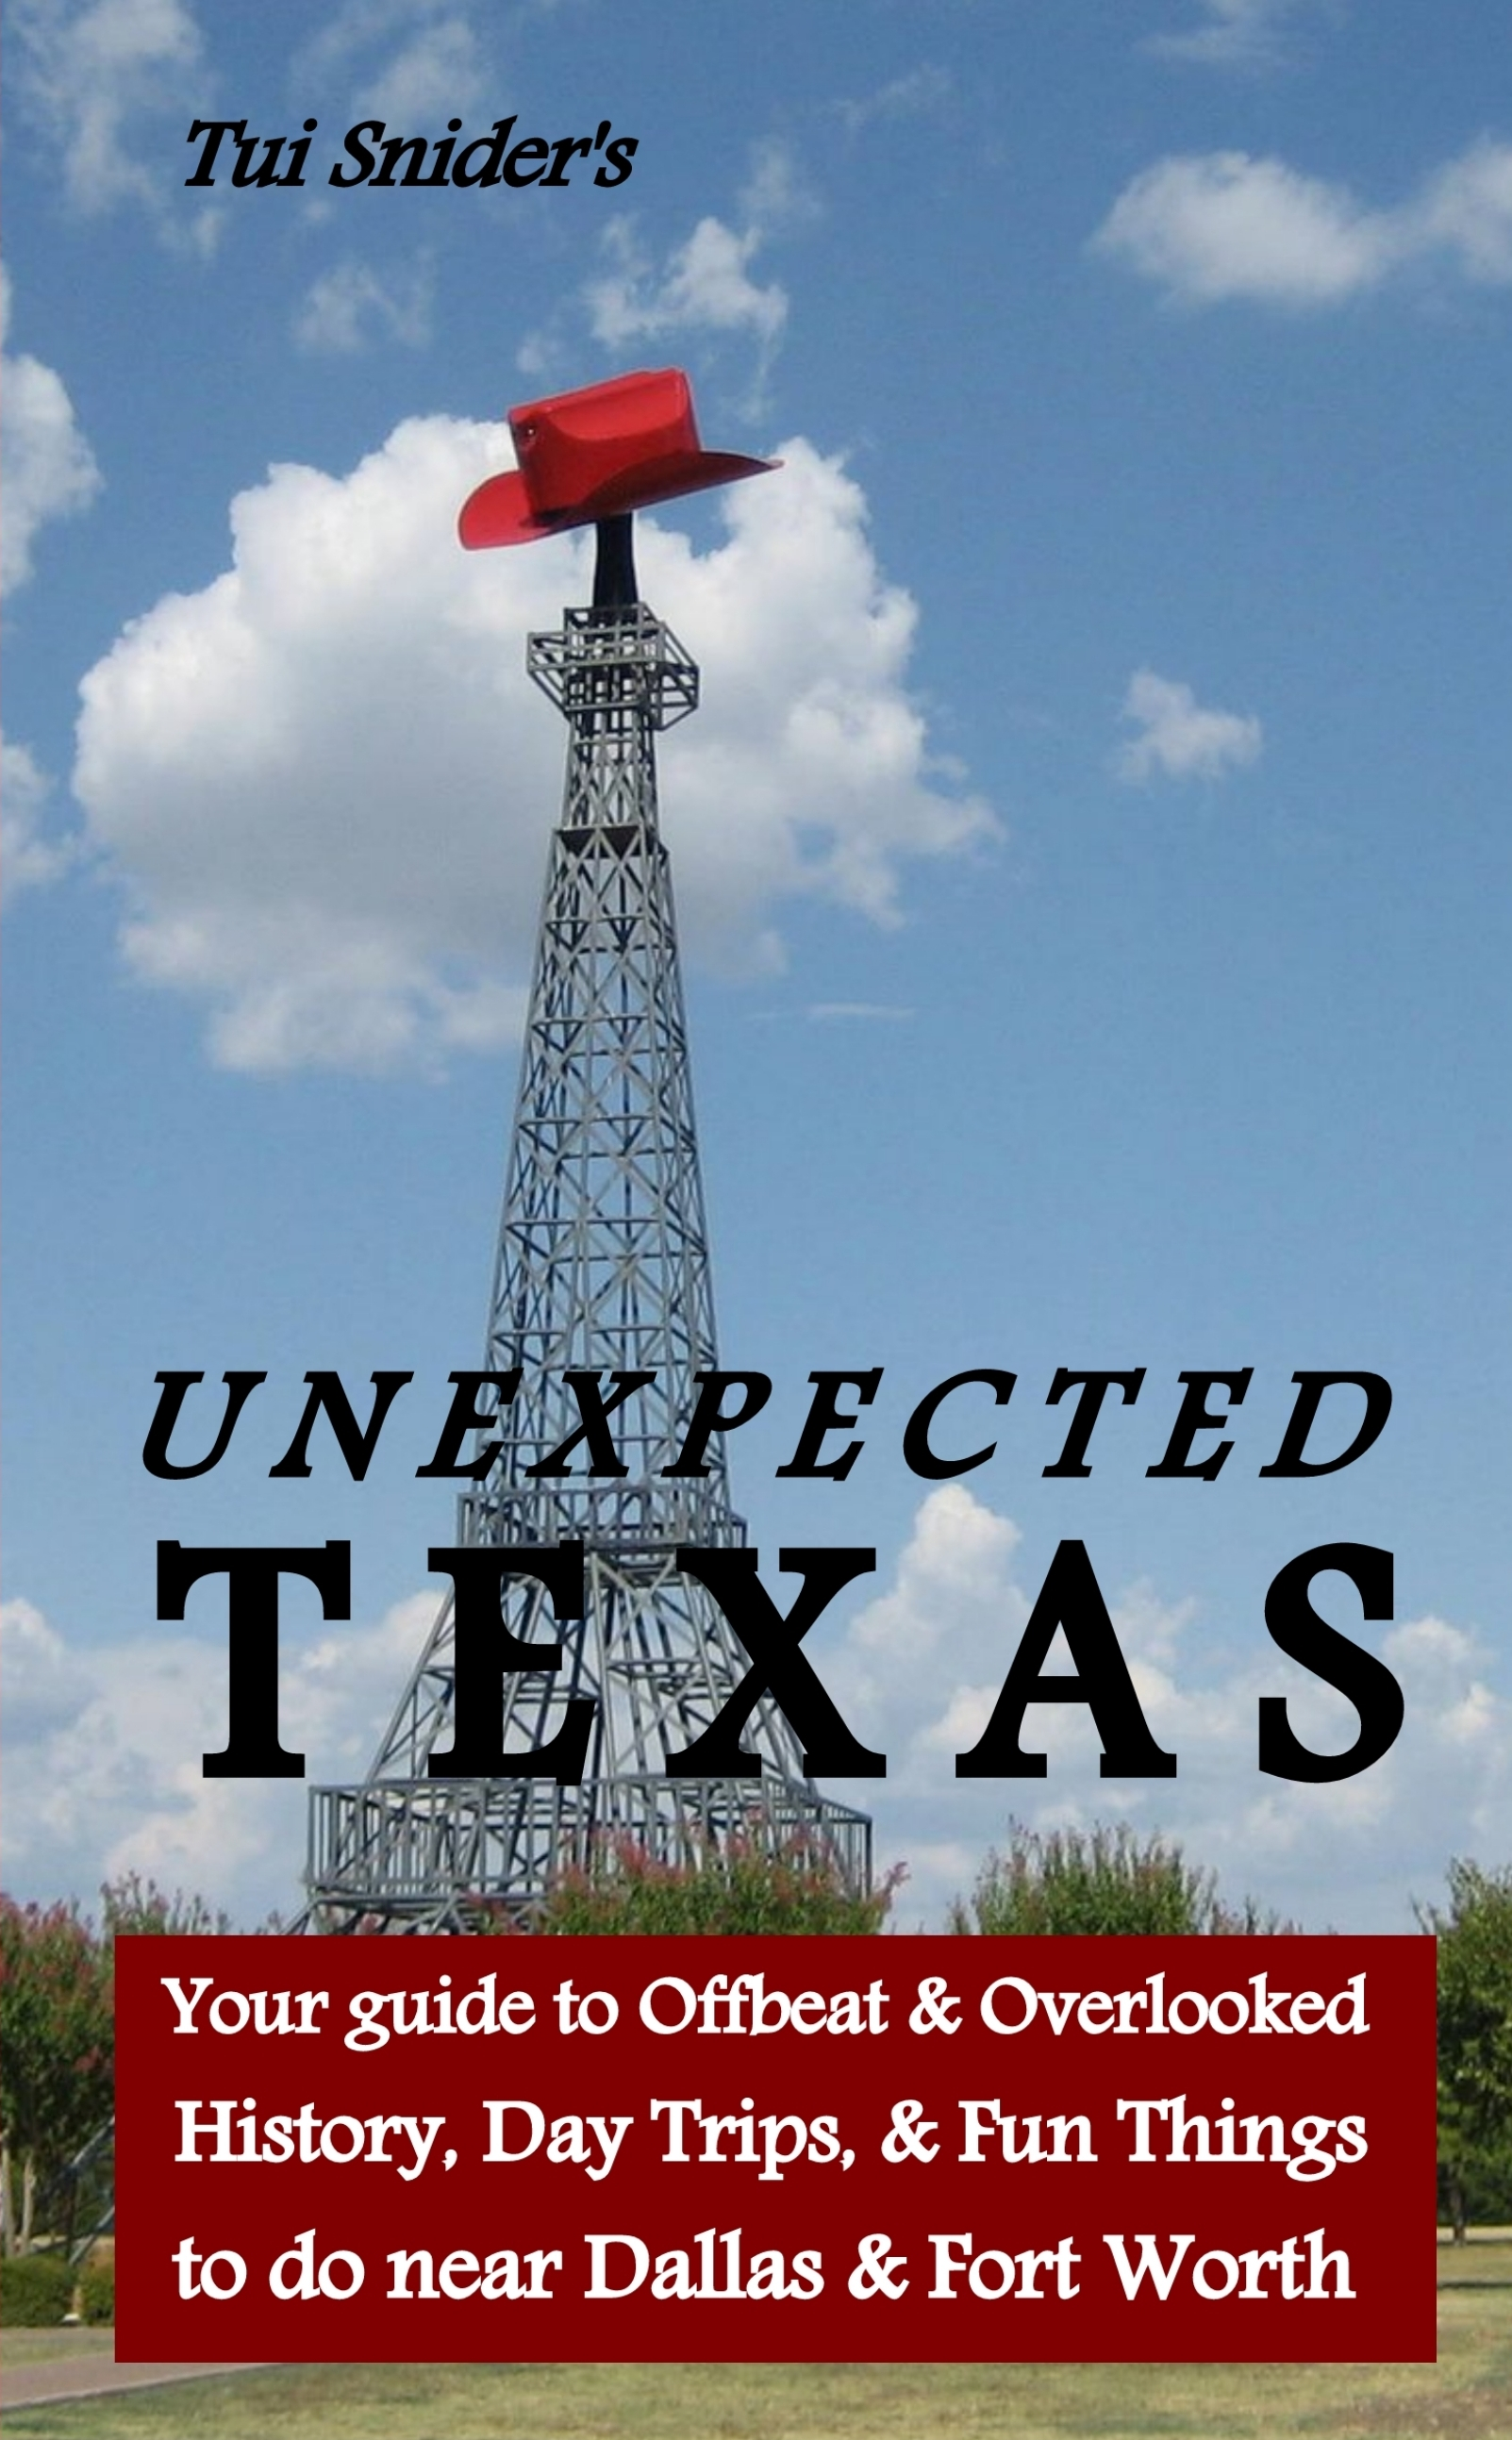 Unexpected Texas - front cover (photo & design, copyright Tui Snider, 2014)